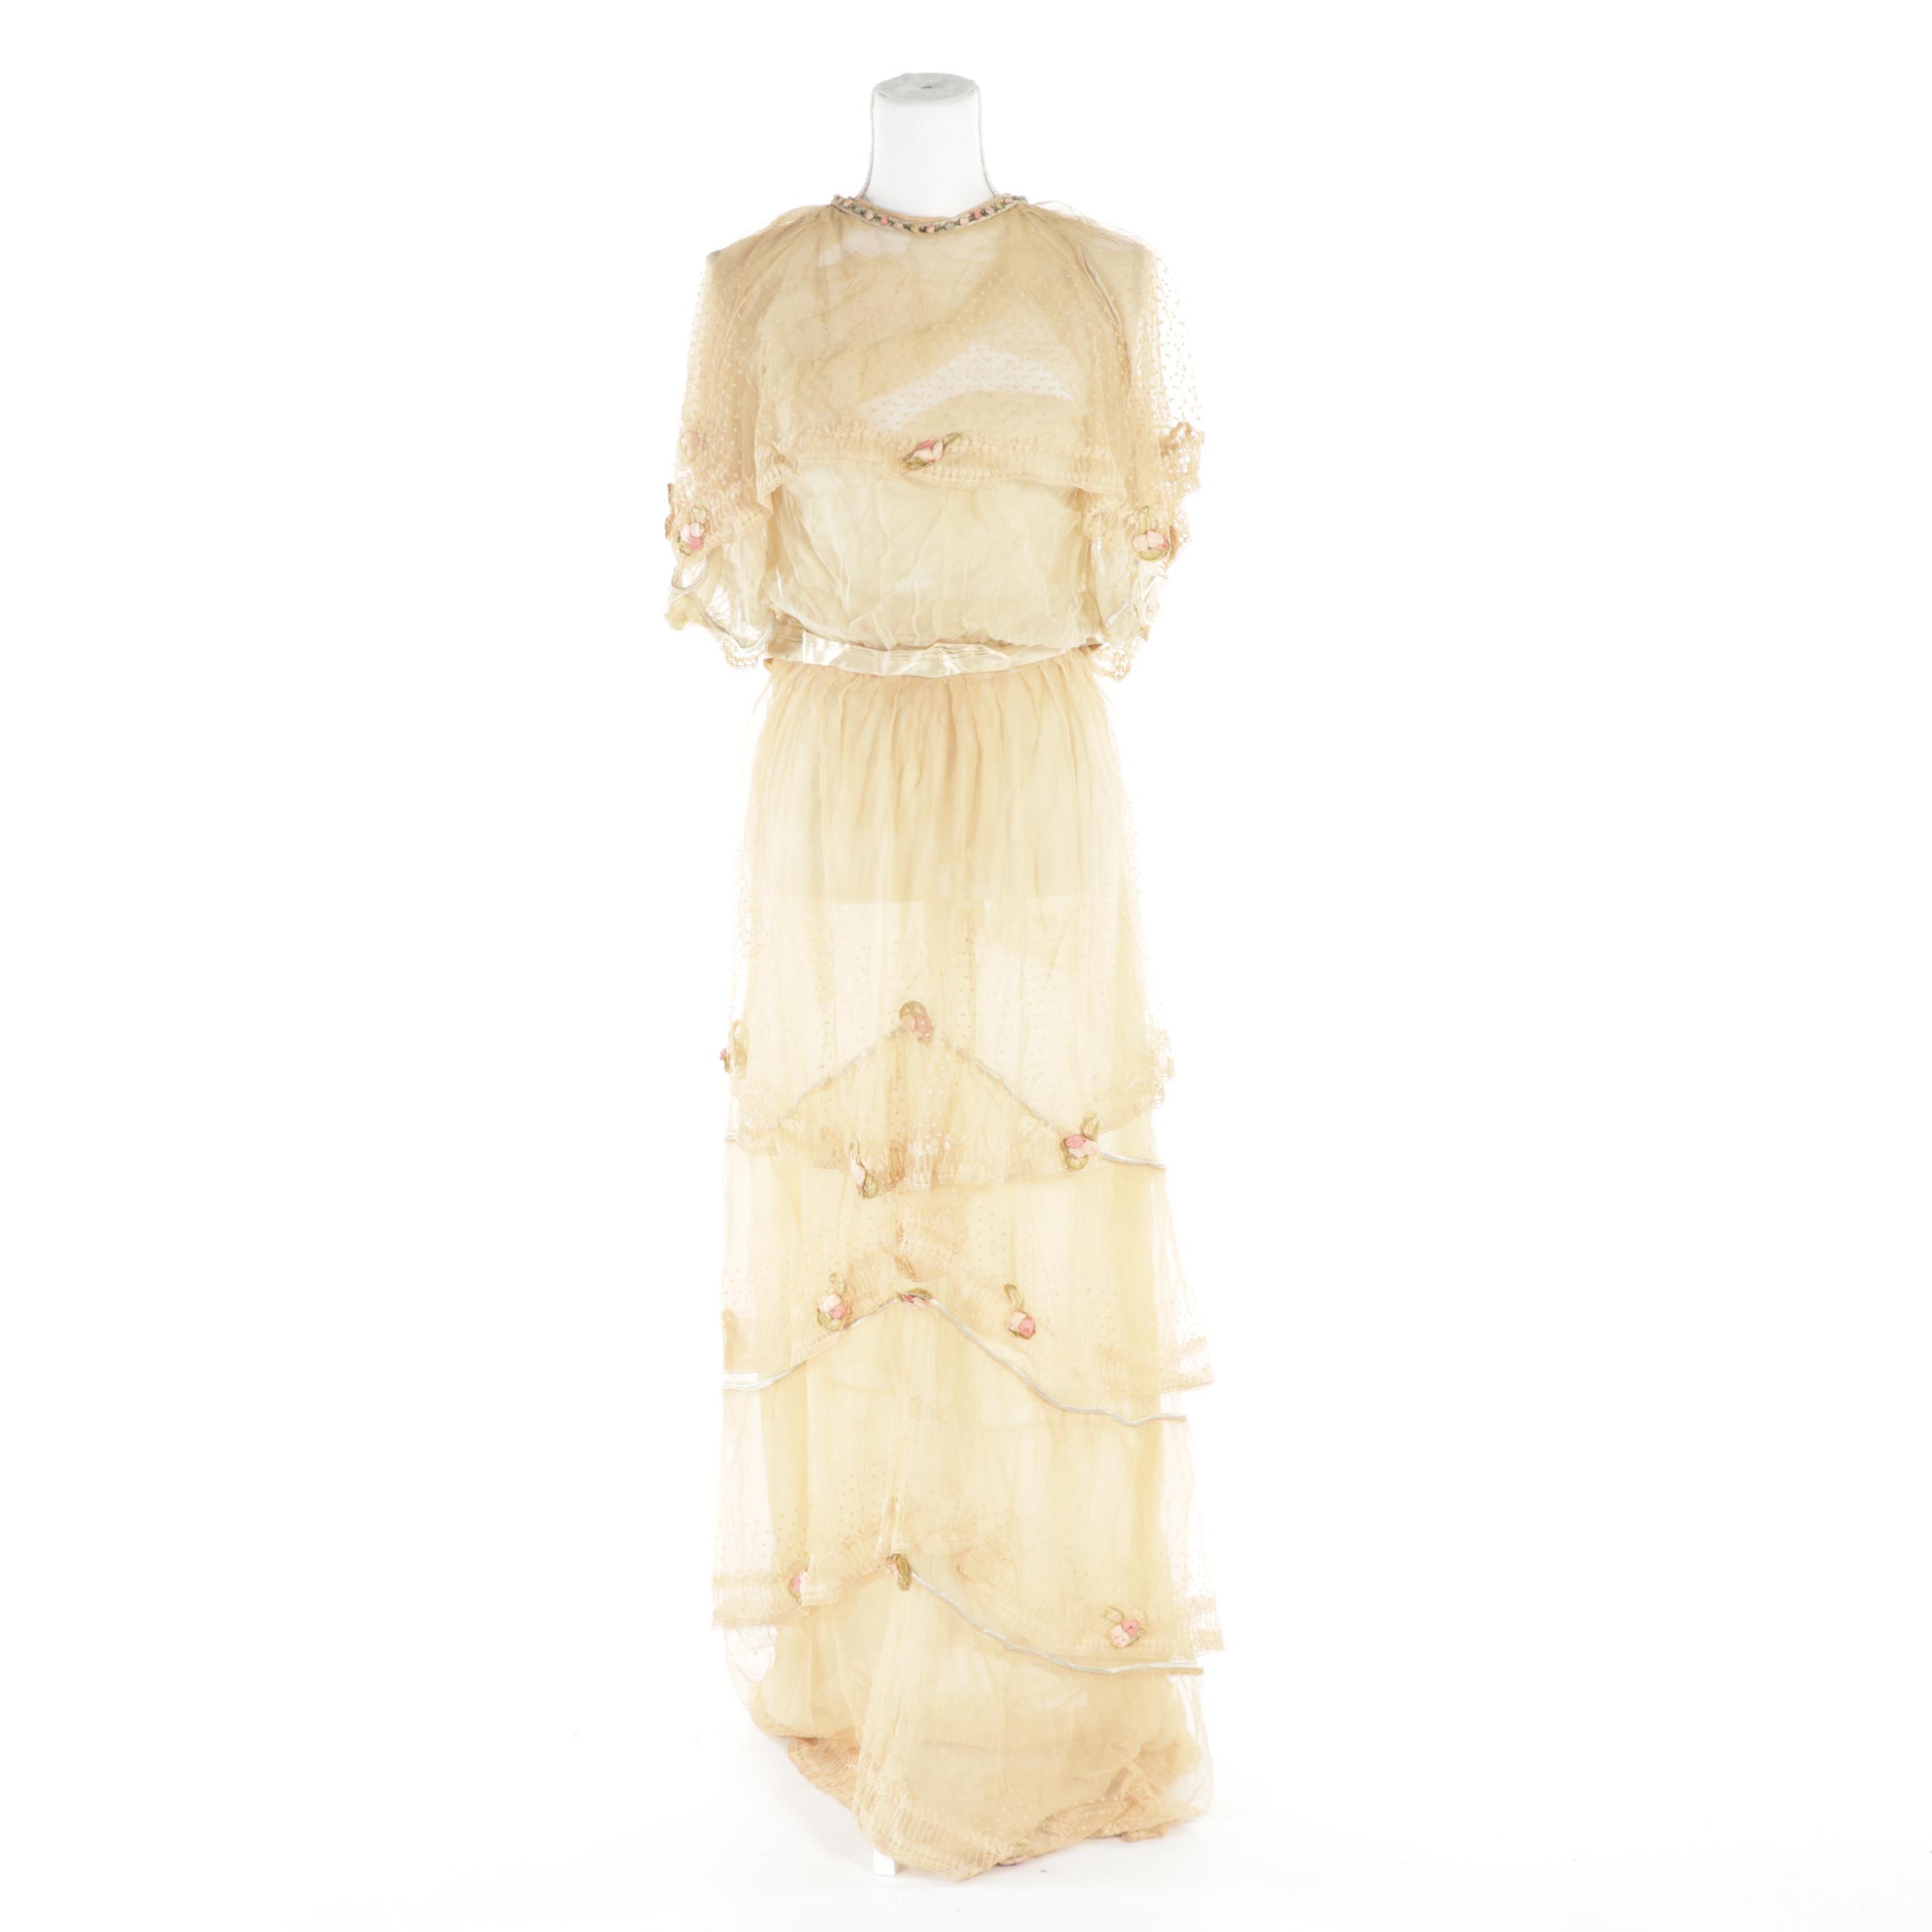 Edwardian Two-Piece Dress in Ivory with Lace Overlay and Ribbon Flowers, Vintage